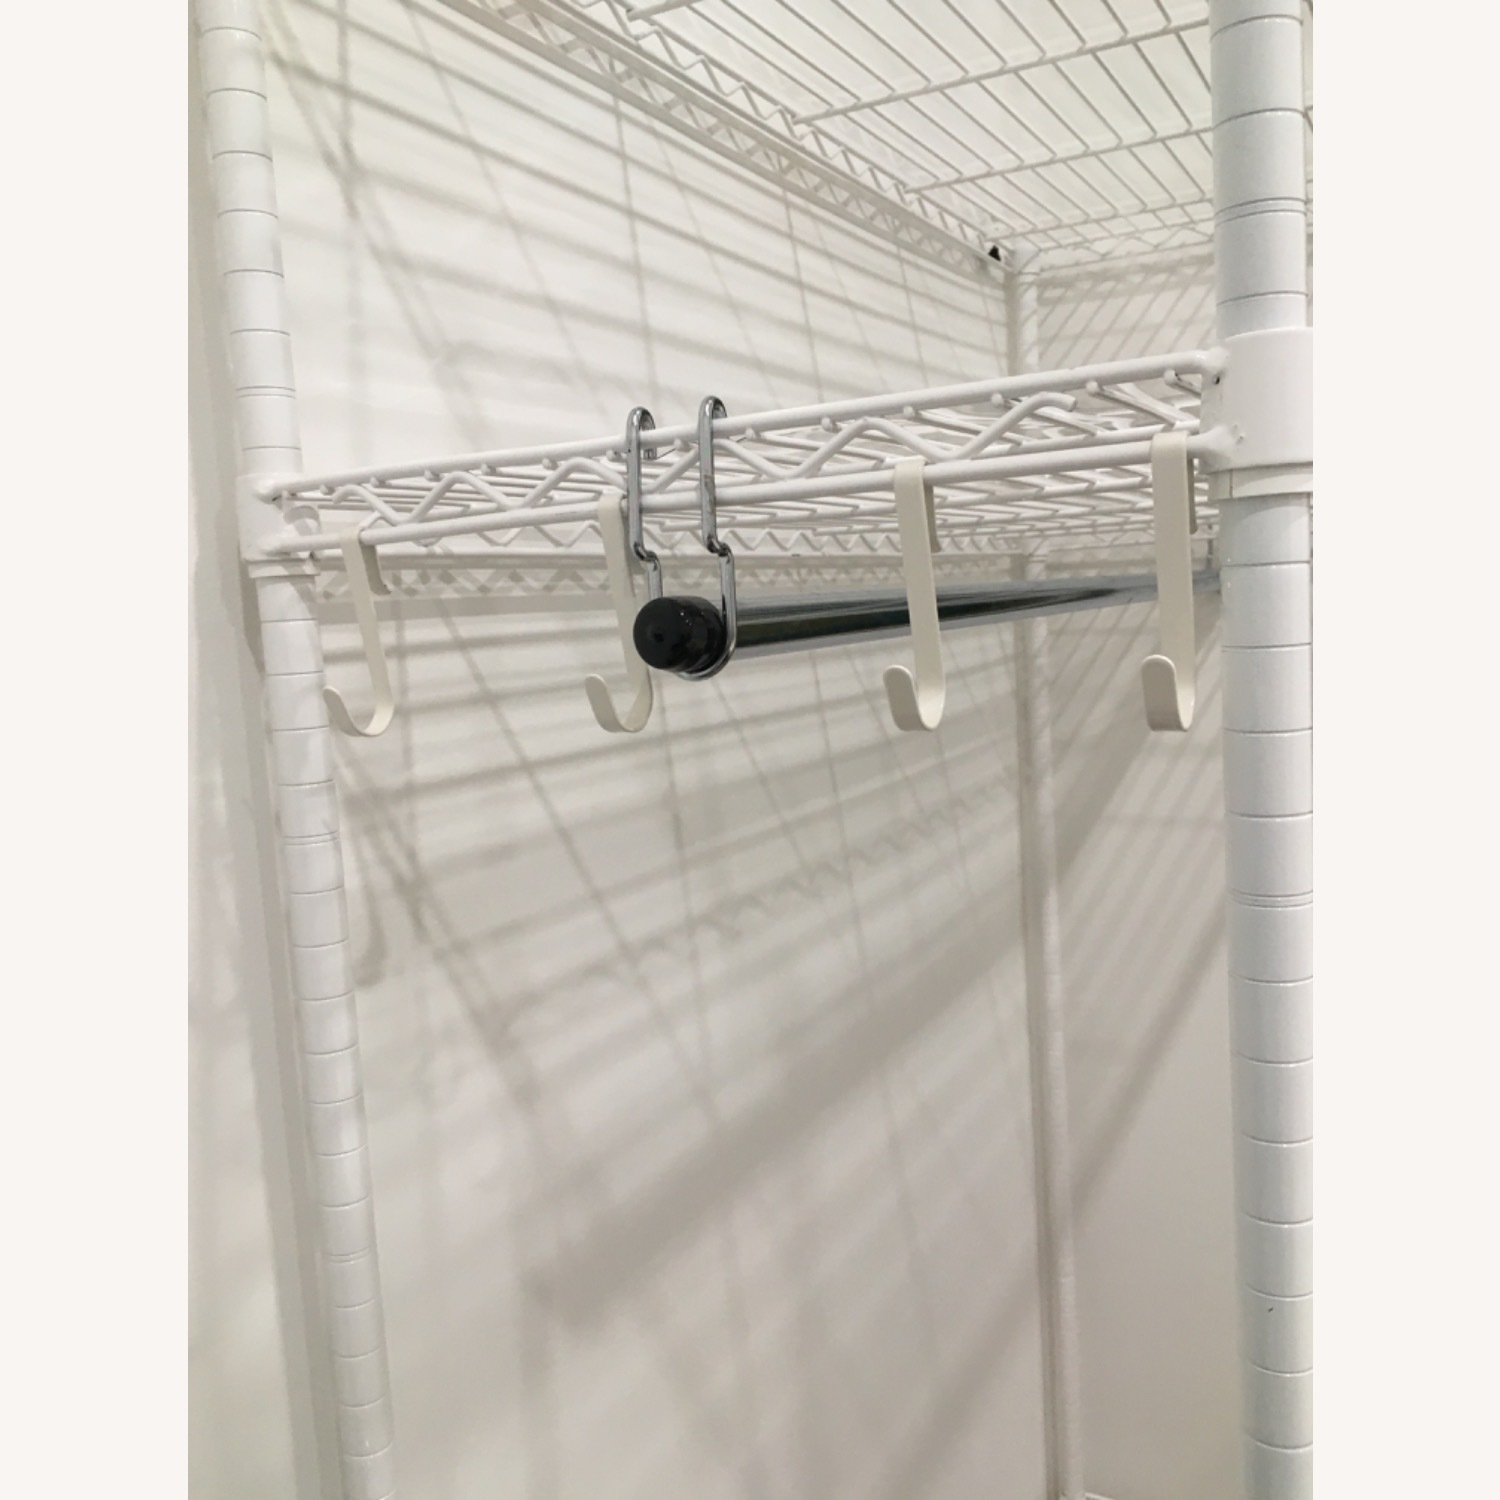 InterMetro Large White Clothes Rack - image-2